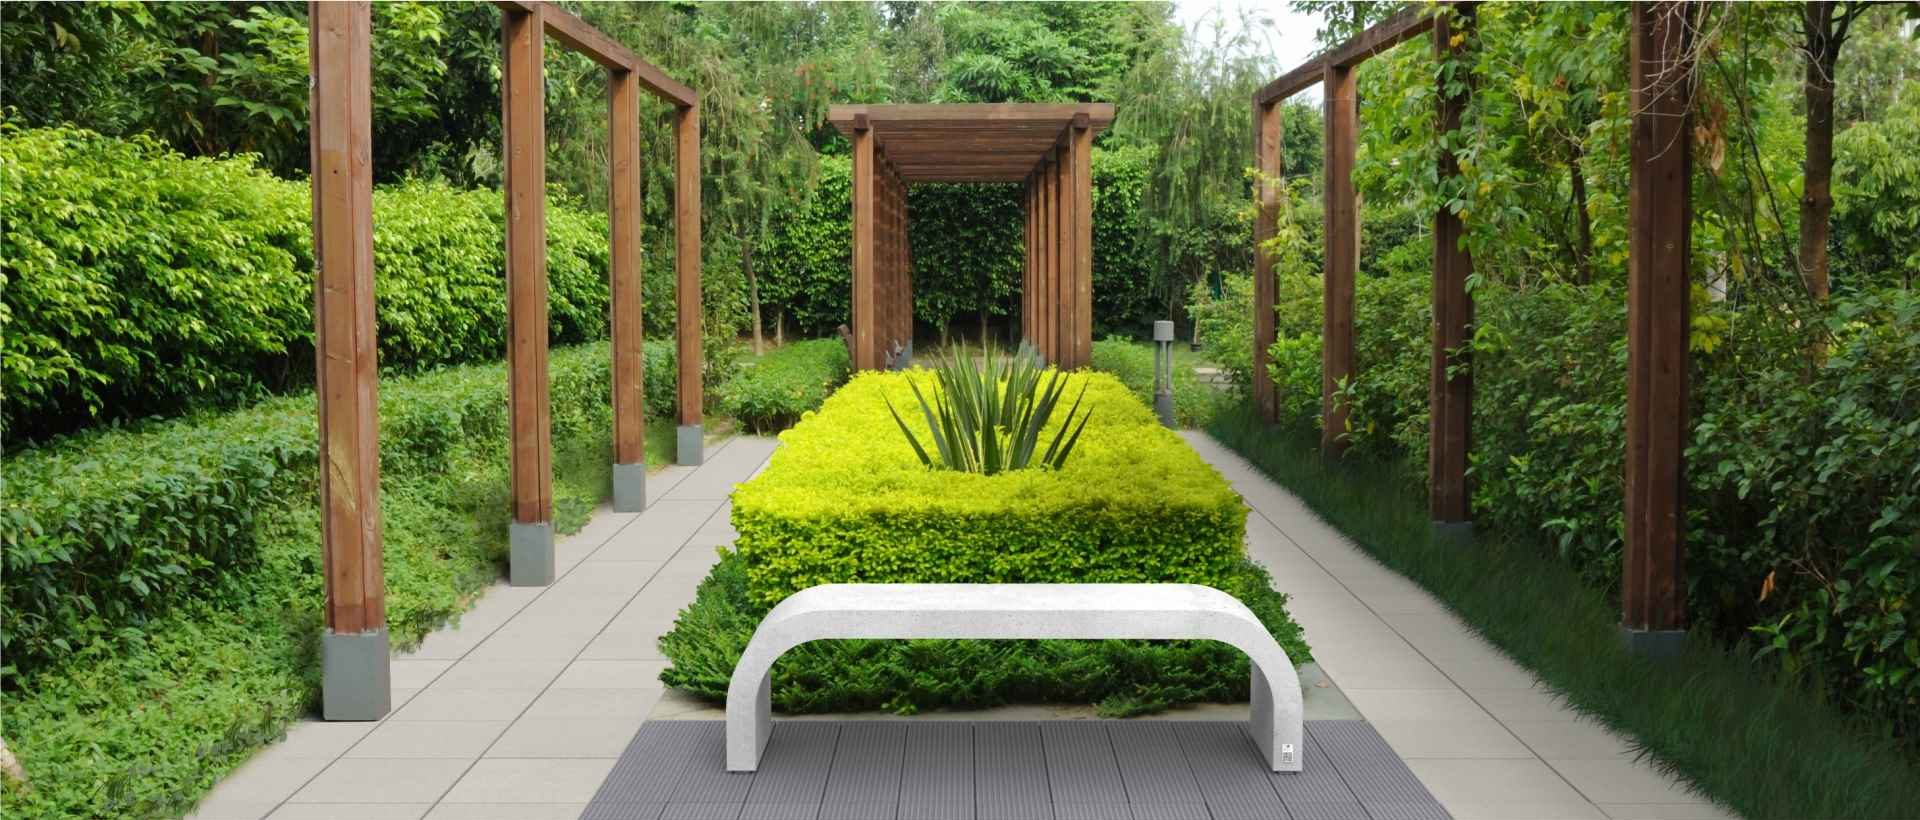 Bench Harmony, Style and Cube slabs, Modern Line